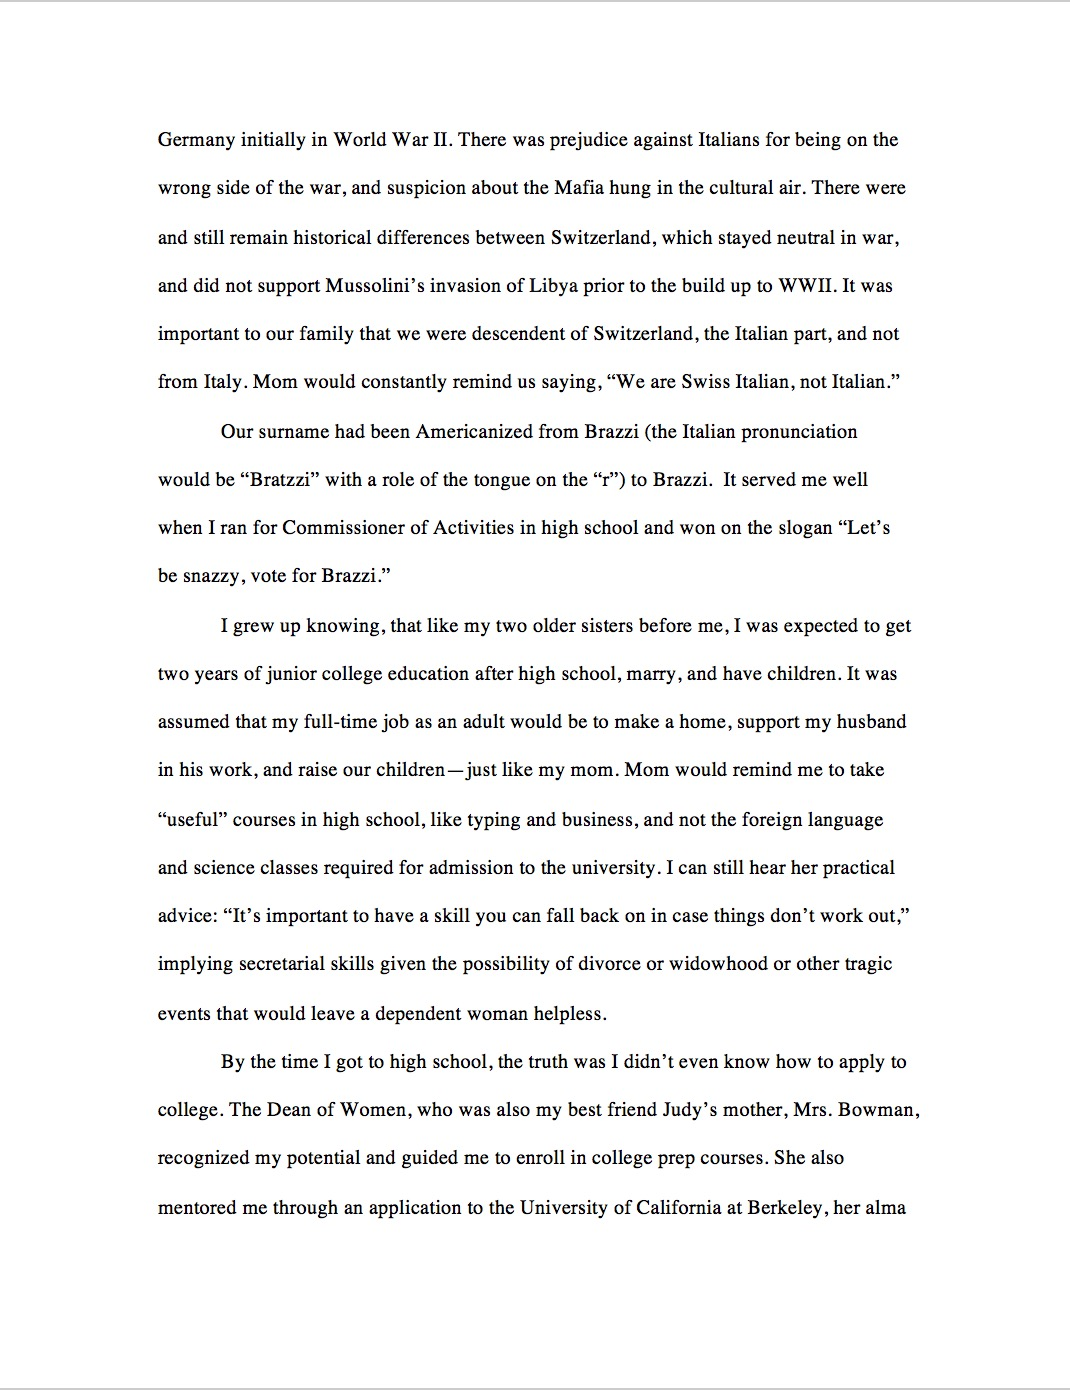 Book Chapter 1 Page 5